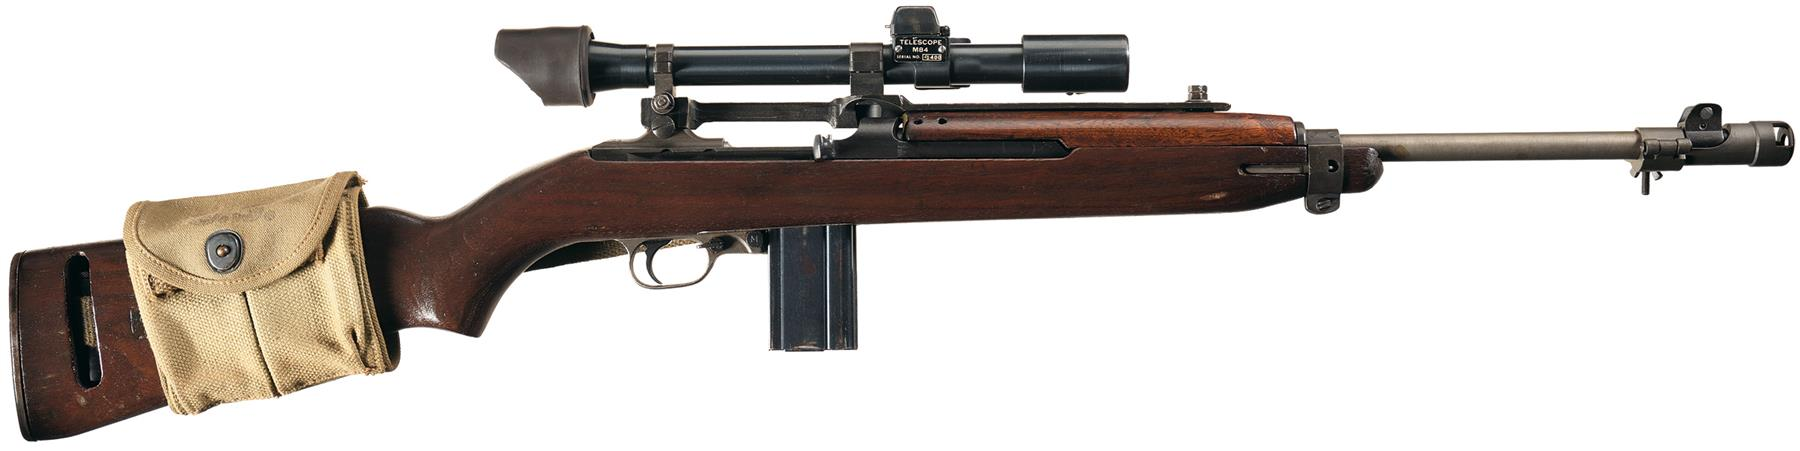 WWII U.S. Army IBM Manufacture M1 Carbine with M84 Scope ... M14 Tactical Sniper Rifle